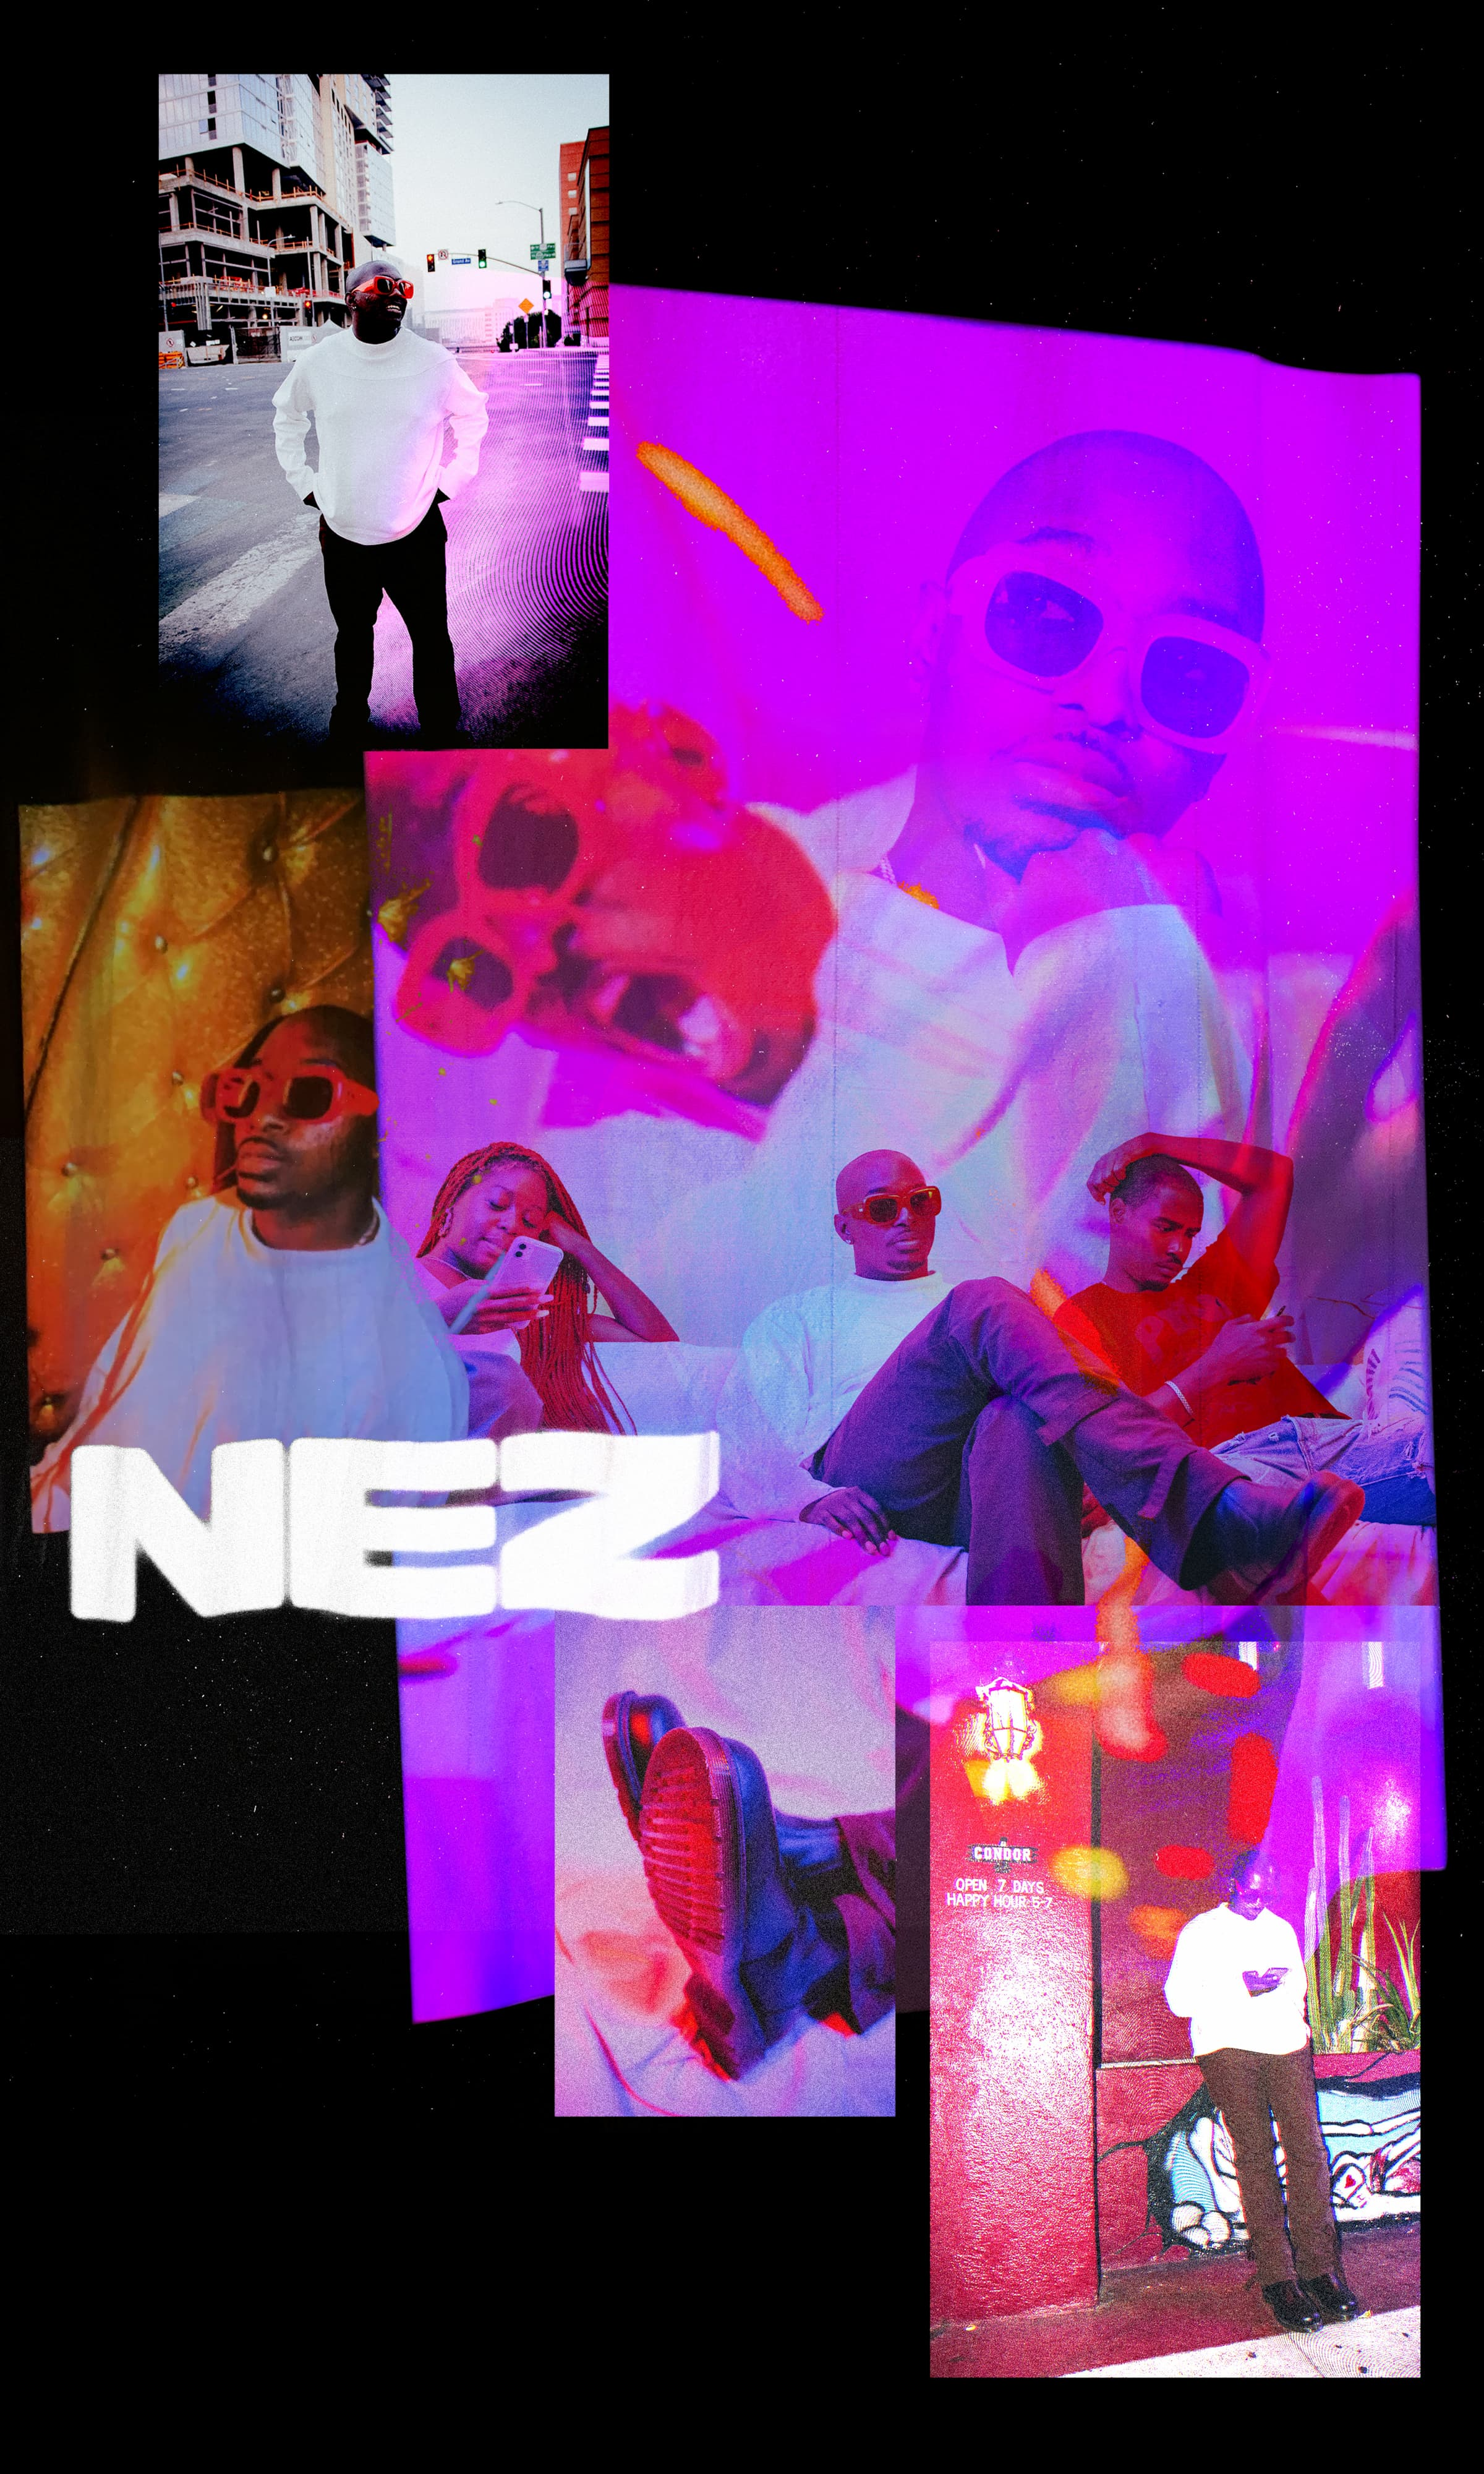 A collage of photos featuring Nez in different poses and outfits on the street and in his studio with friends.